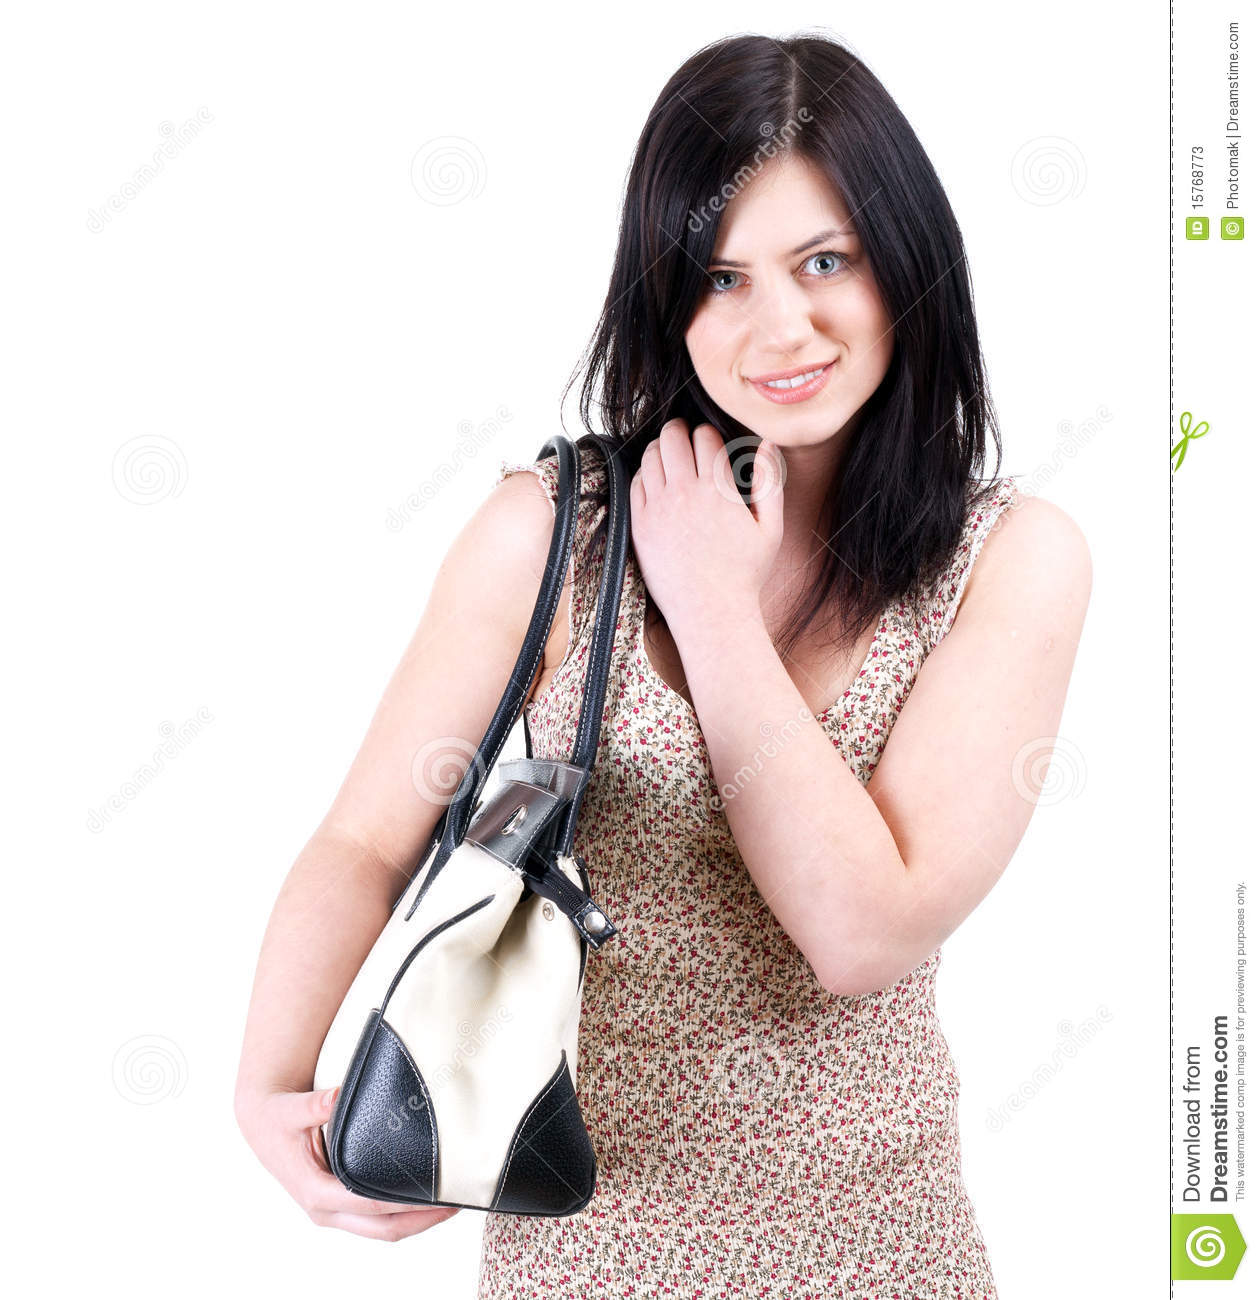 Woman With Bag Stock Photos - Image: 15768773